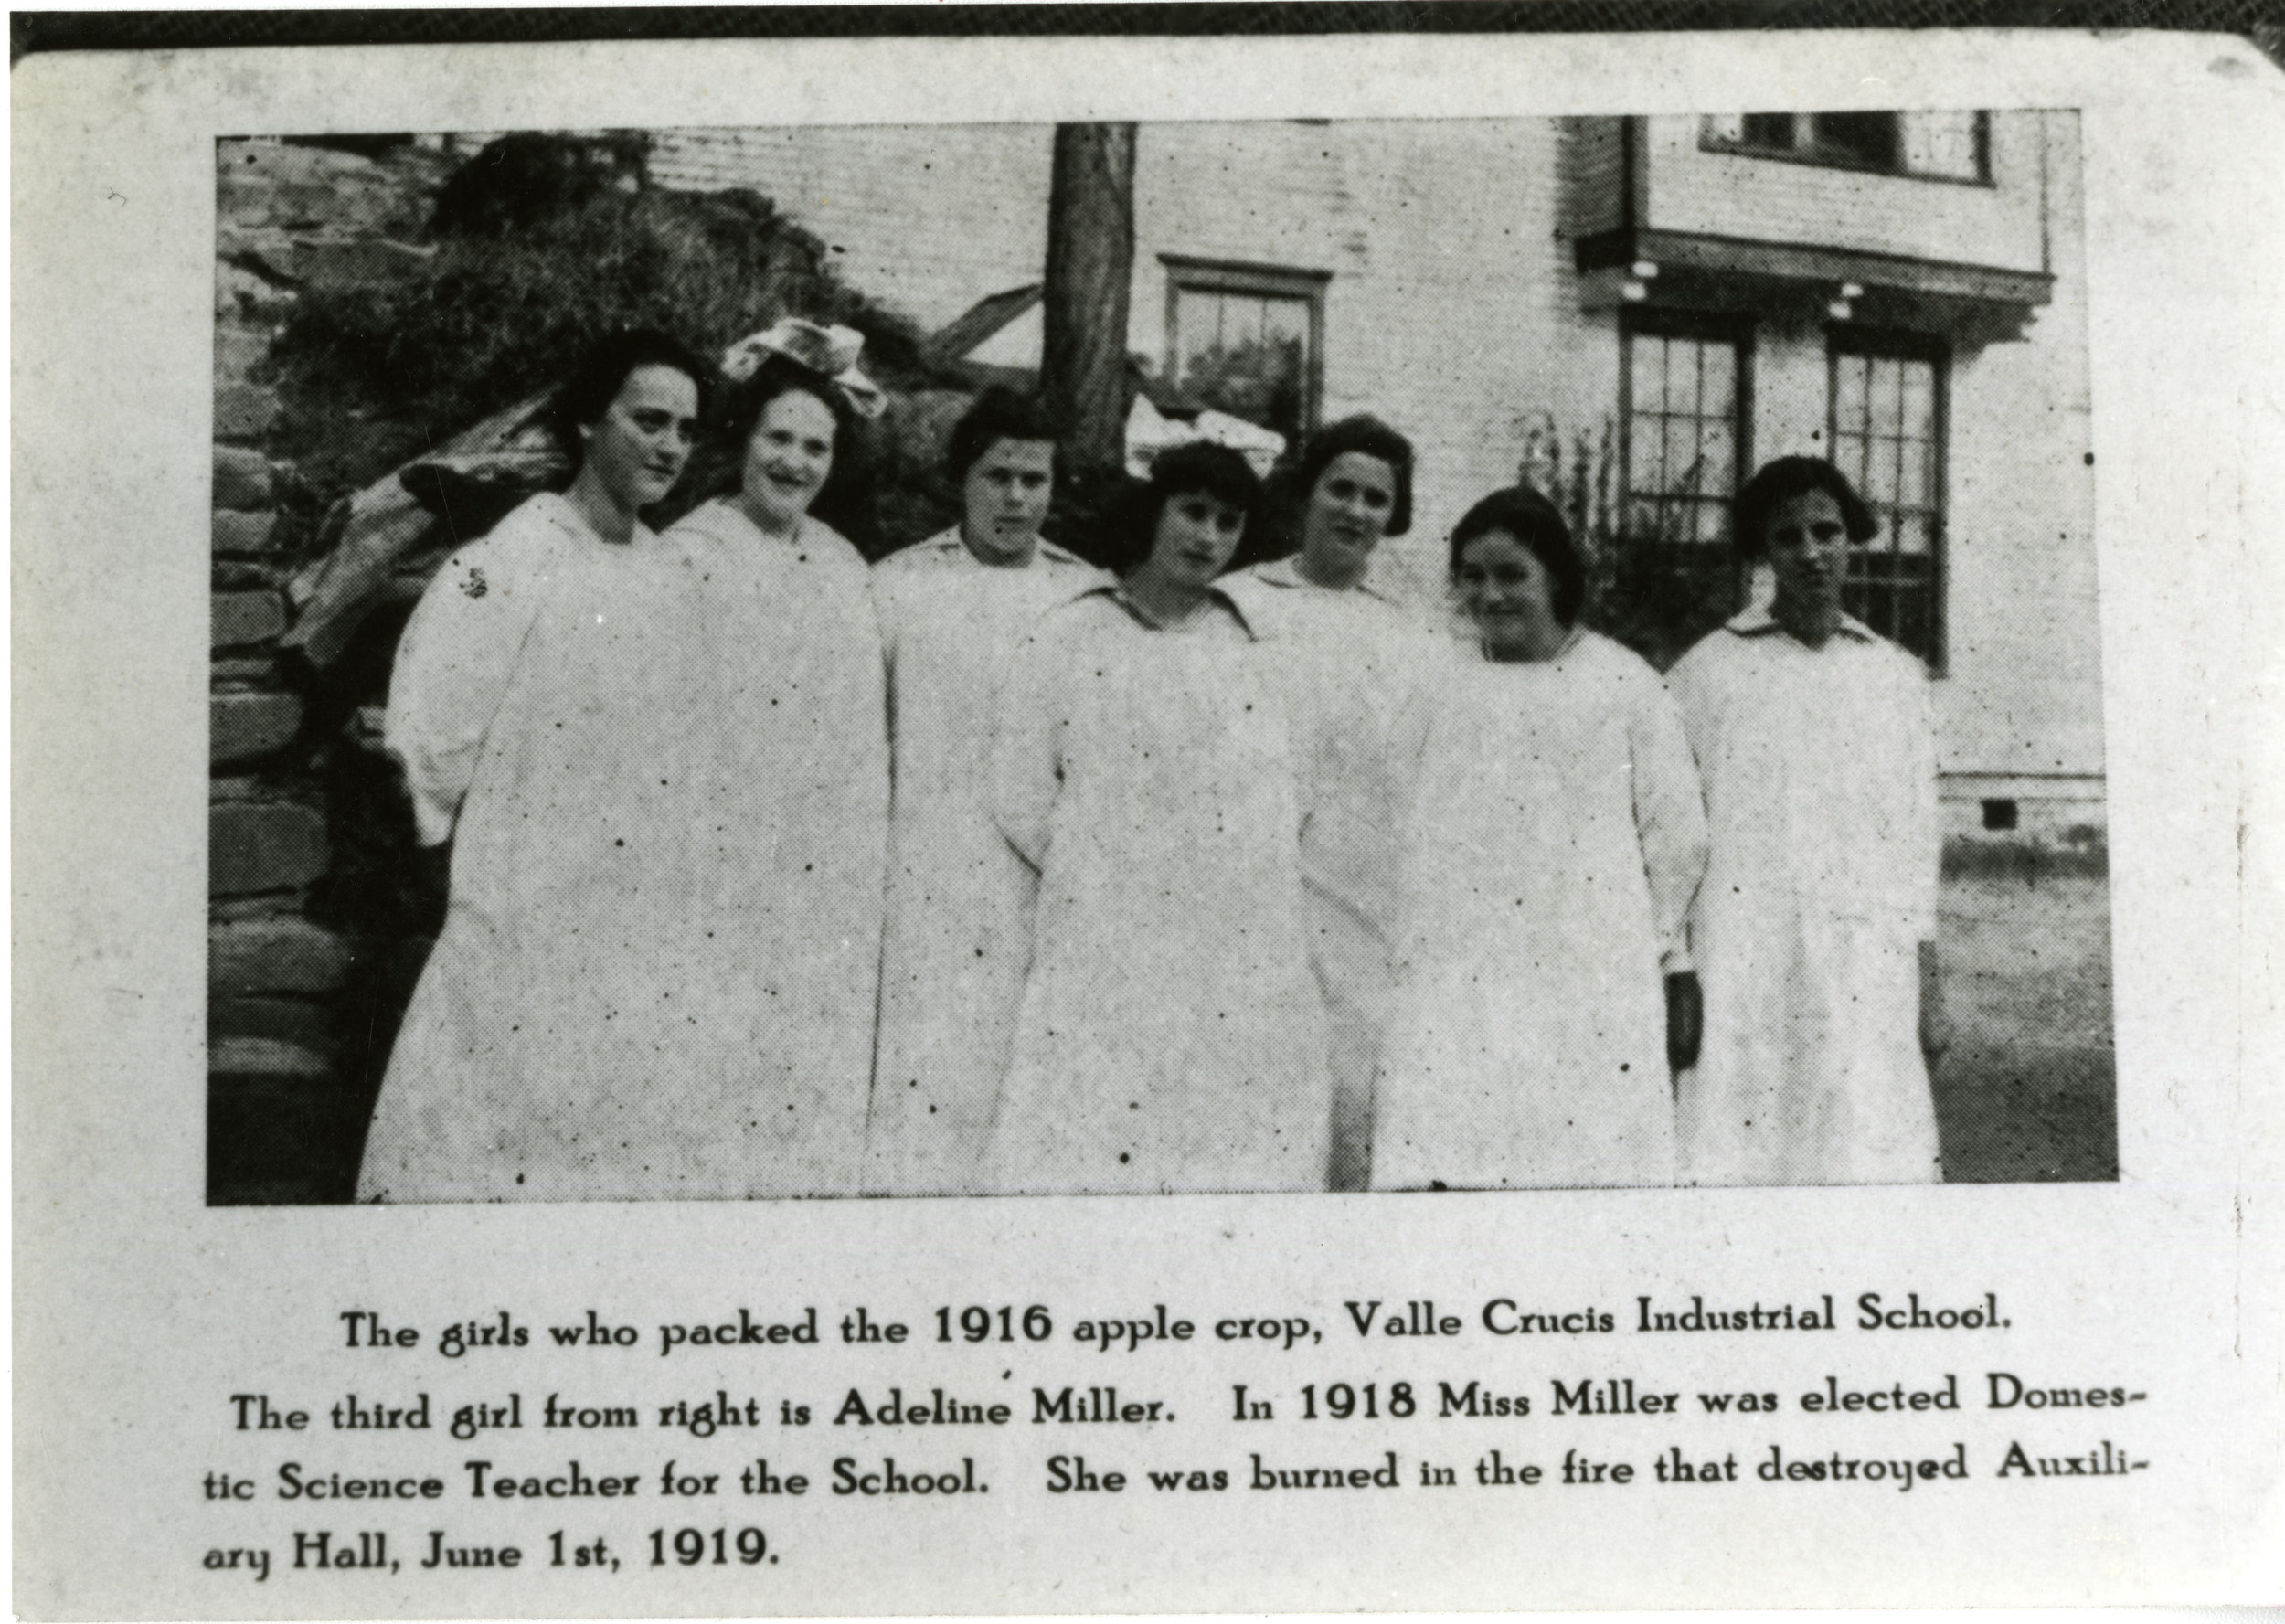 Image taken in 1916 showing Adeline Miller, who perished in the 1919 Auxiliary Hall fire. Image from the Valle Crucis Conference Center Collection (Val-Cru-2-027).